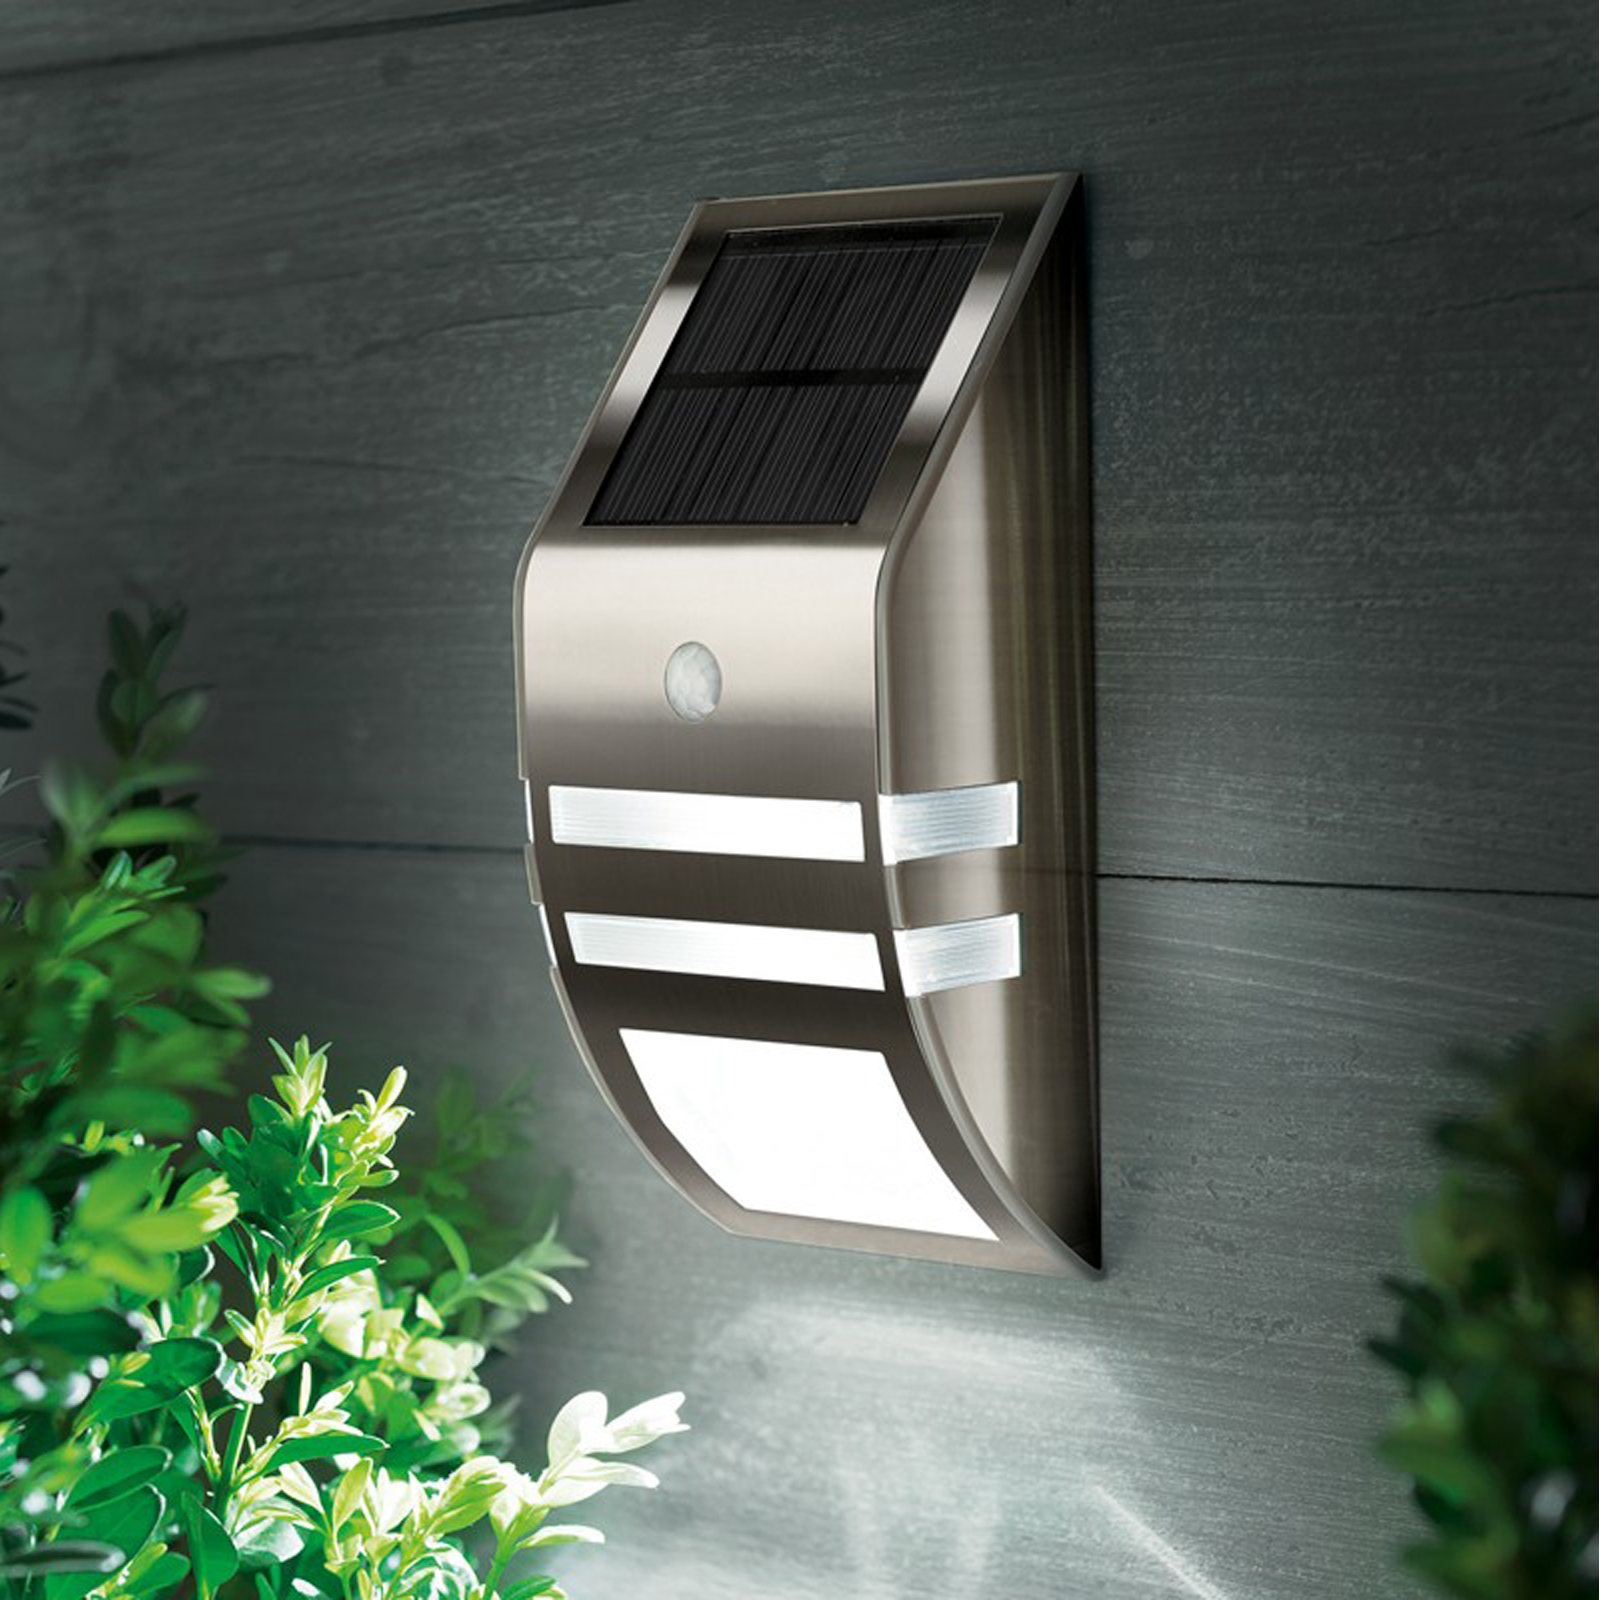 Solar sensor light Shop for cheap Lighting and Save online